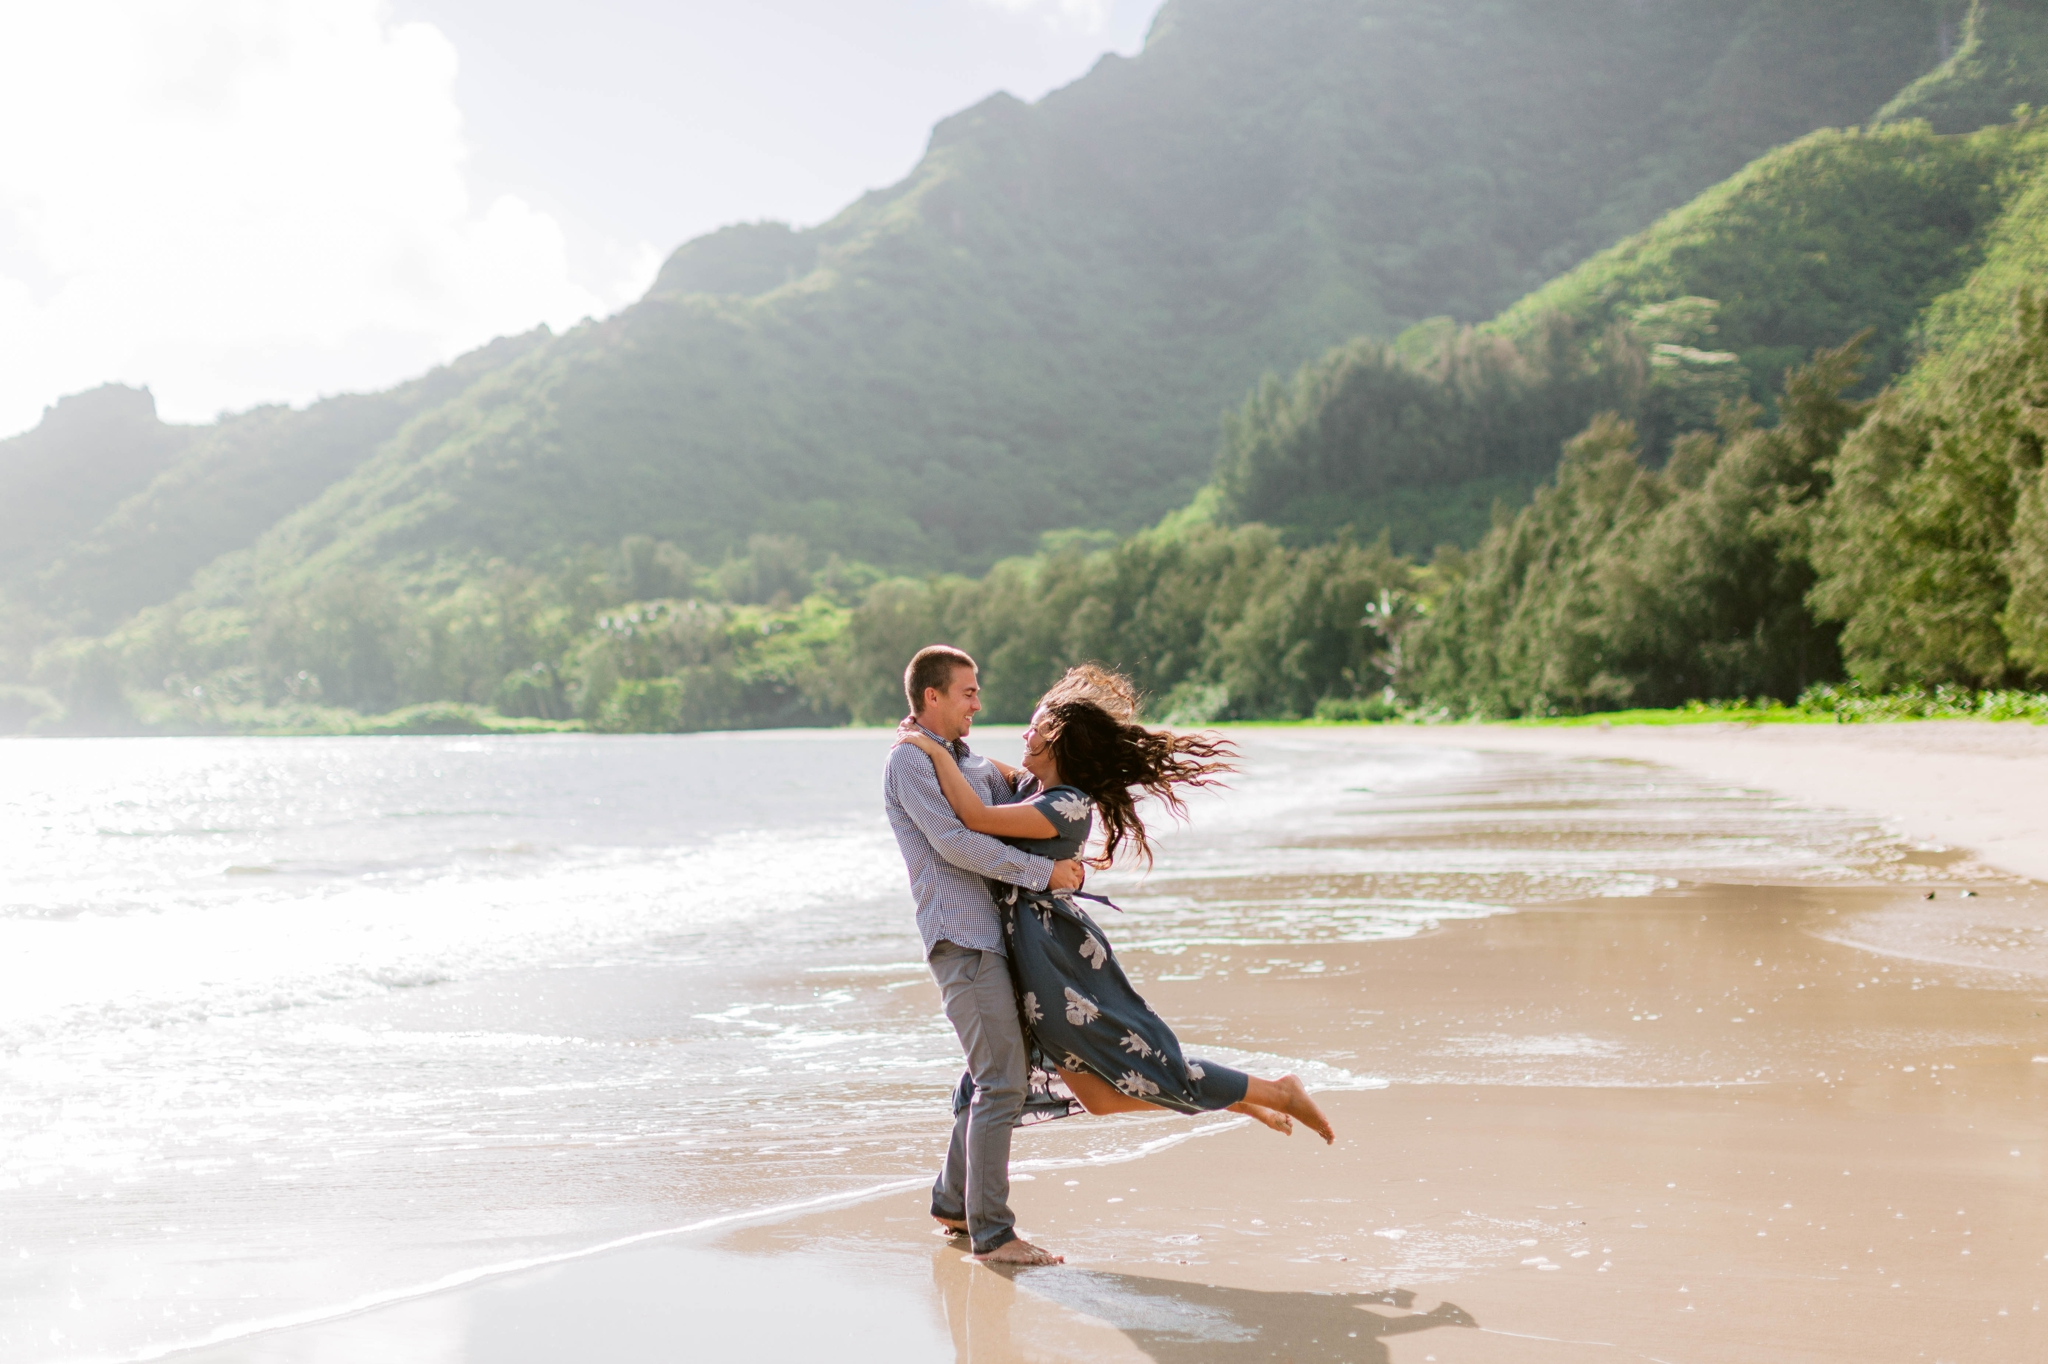 Guy swinging his fiance around - Rilee + Max - Beach Engagement Session at Kahana Bay in Kaaawa, HI - Oahu Hawaii Wedding Photographer - #hawaiiengagementphotographer #oahuengagementphotographer